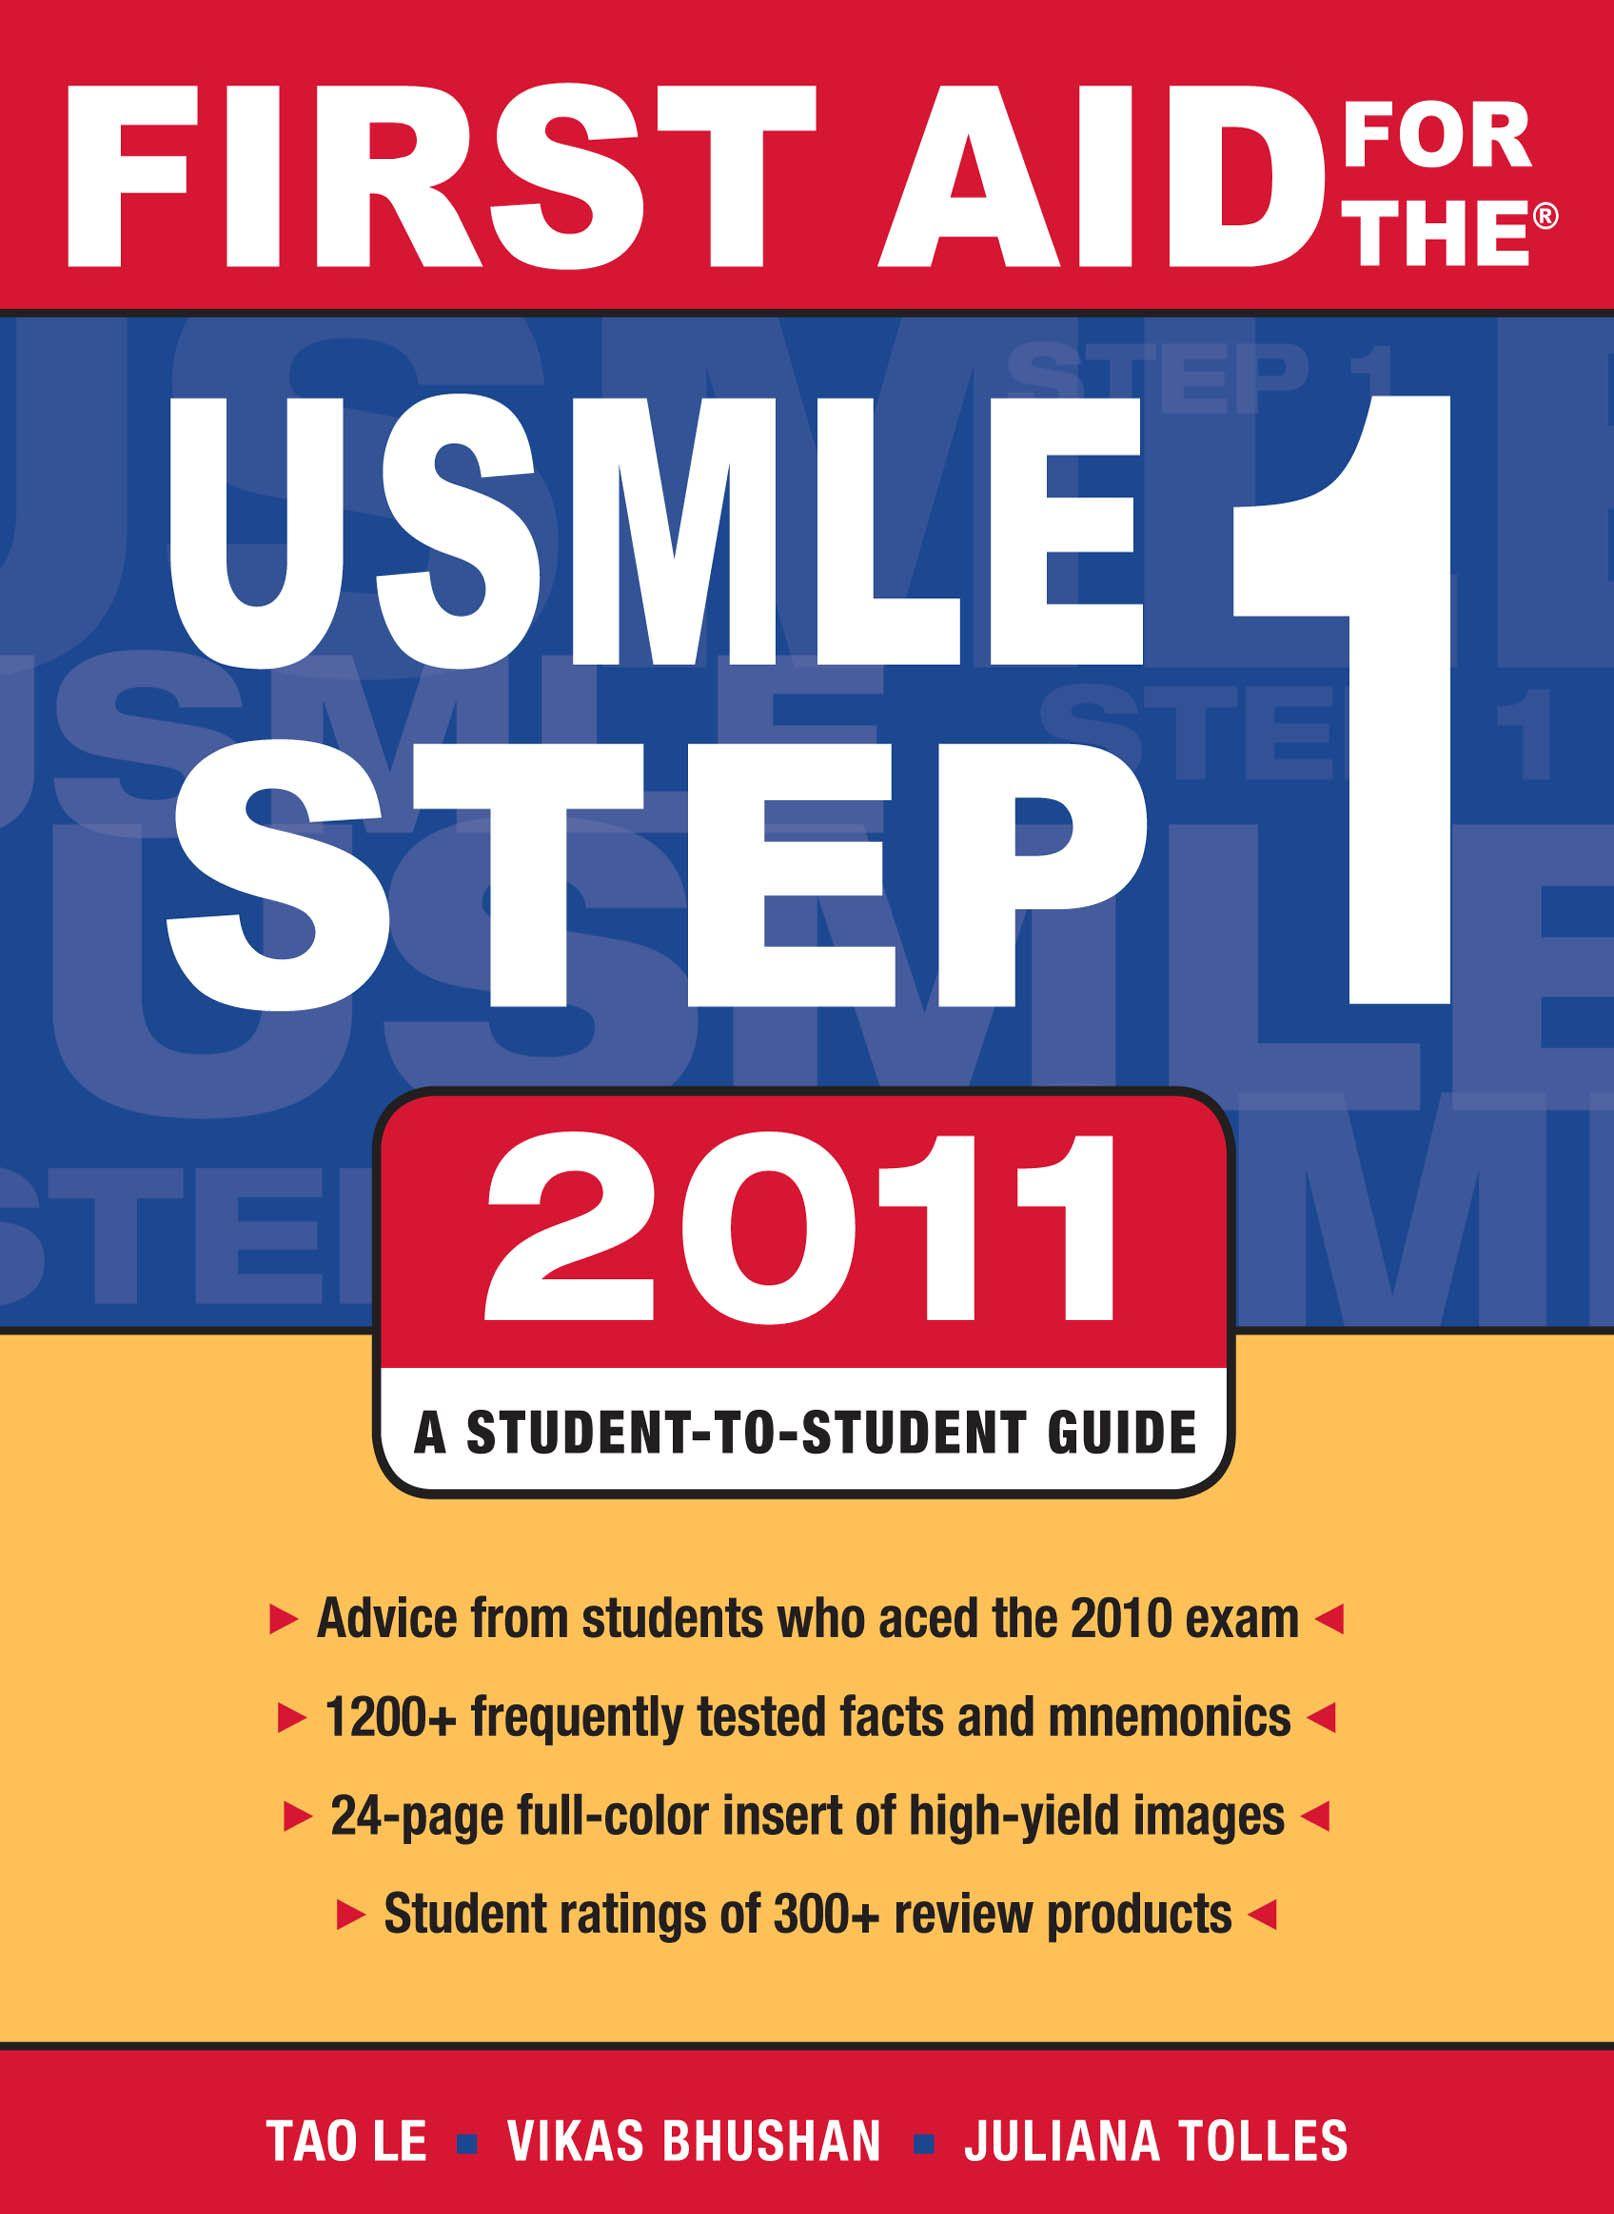 First Aid for the USMLE Step 1 2011 By:  Juliana Tolles, Vikas Bhushan,Tao Le